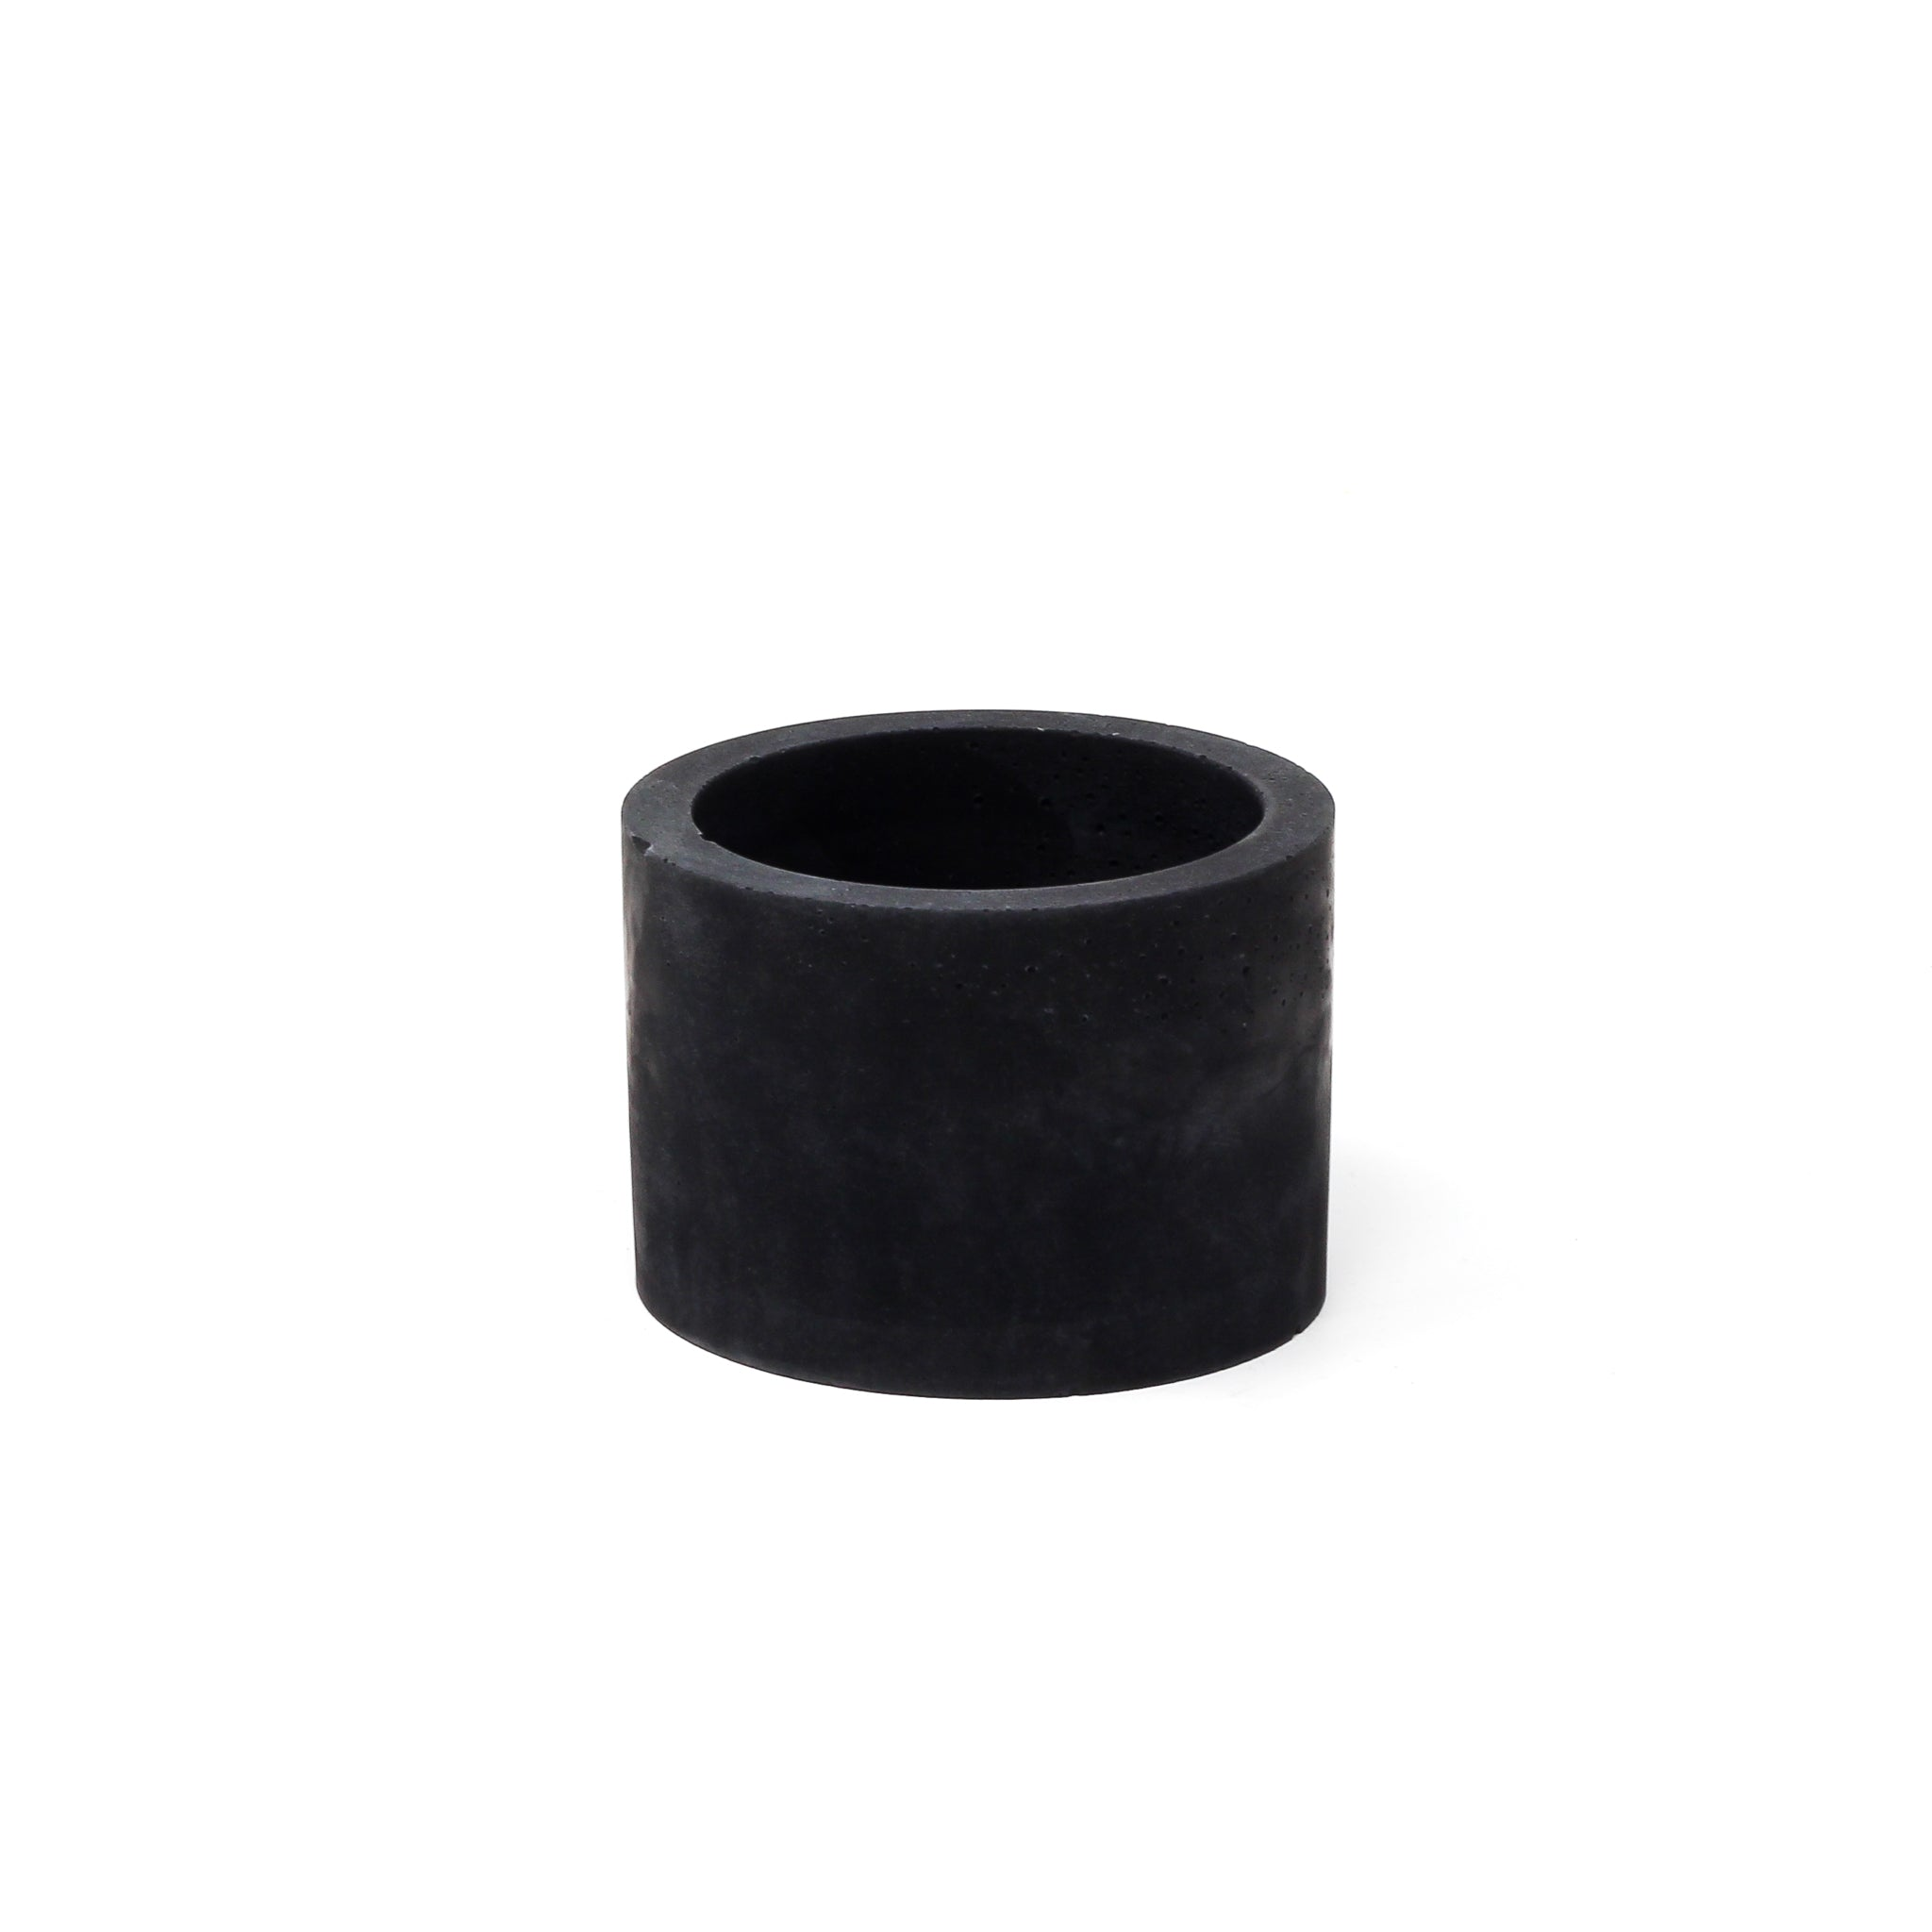 Concrete Planter: Carbon Black Short Cylinder